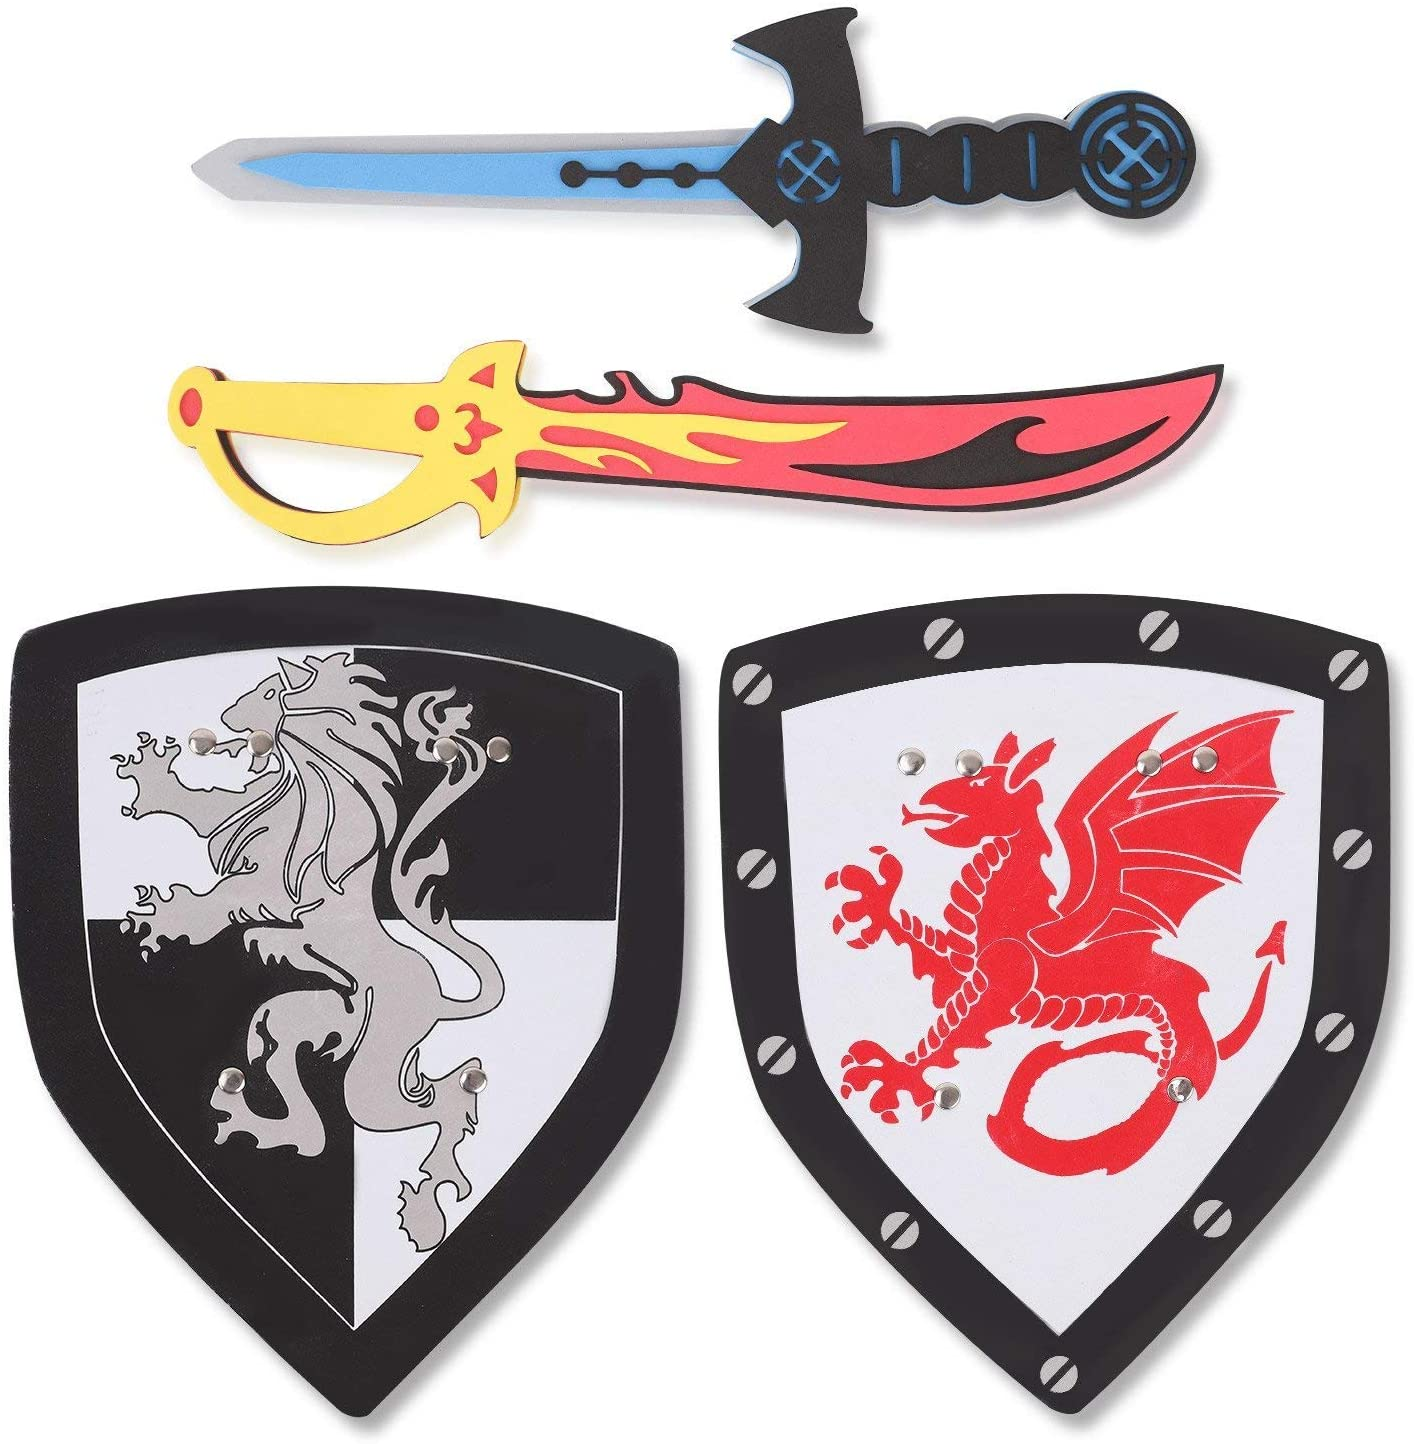 KNIGHT MEDIEVAL PARTY felt swordsparty suppliesset of 10 swordsfun for play